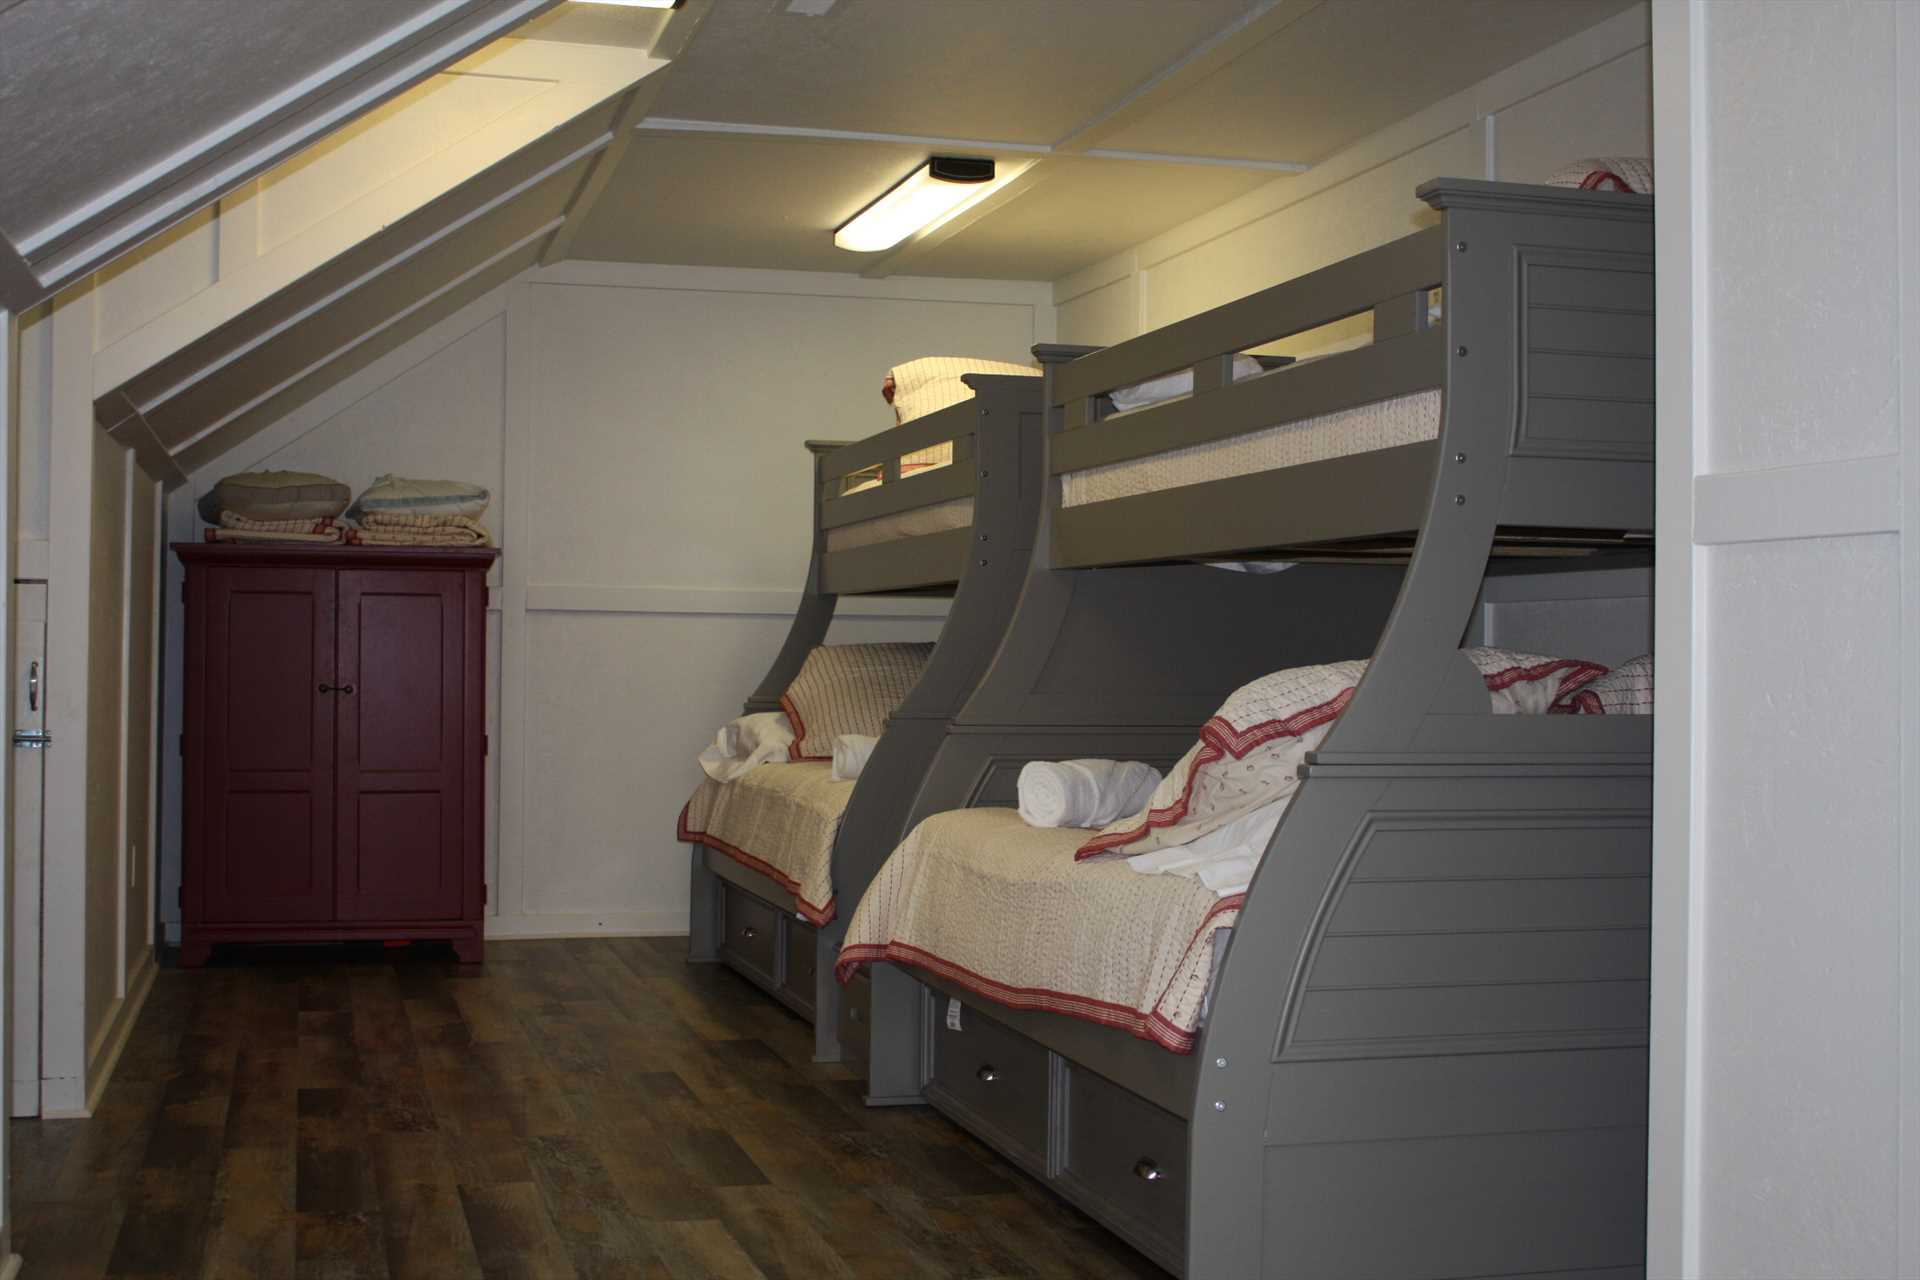 Upstair Bunk bed room